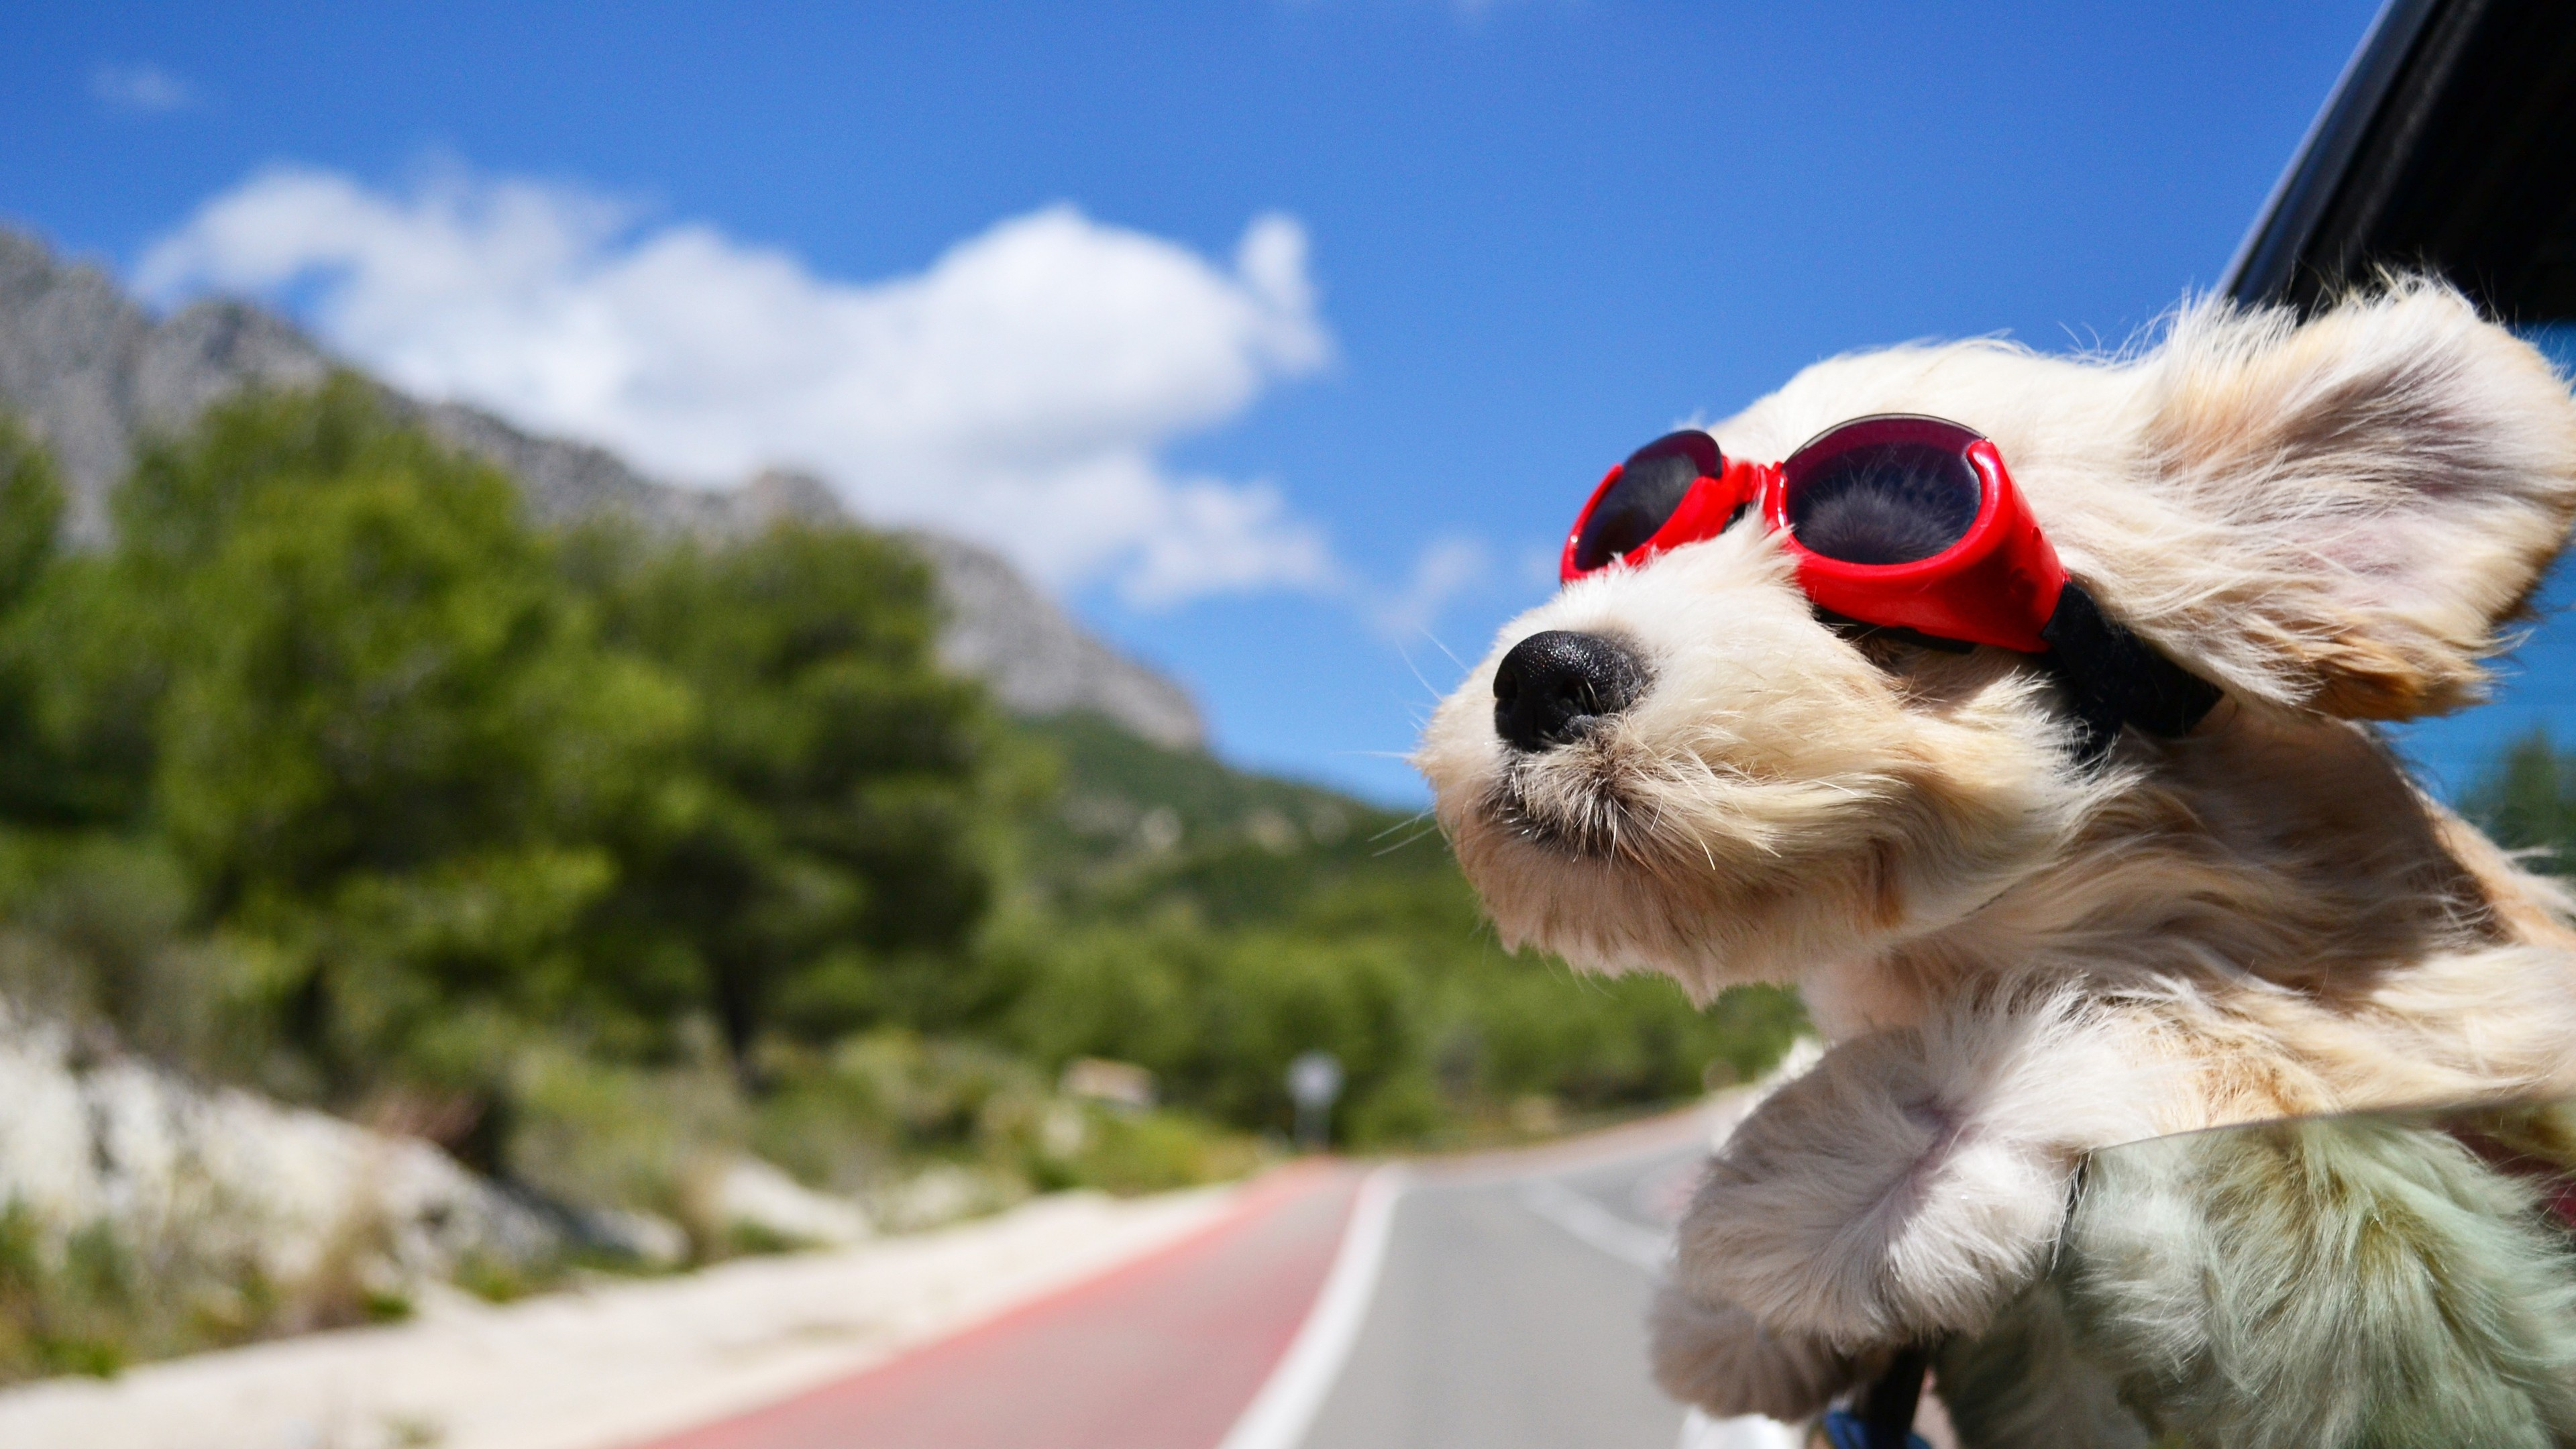 3840x2160 Preview wallpaper dog, face, wind, glasses